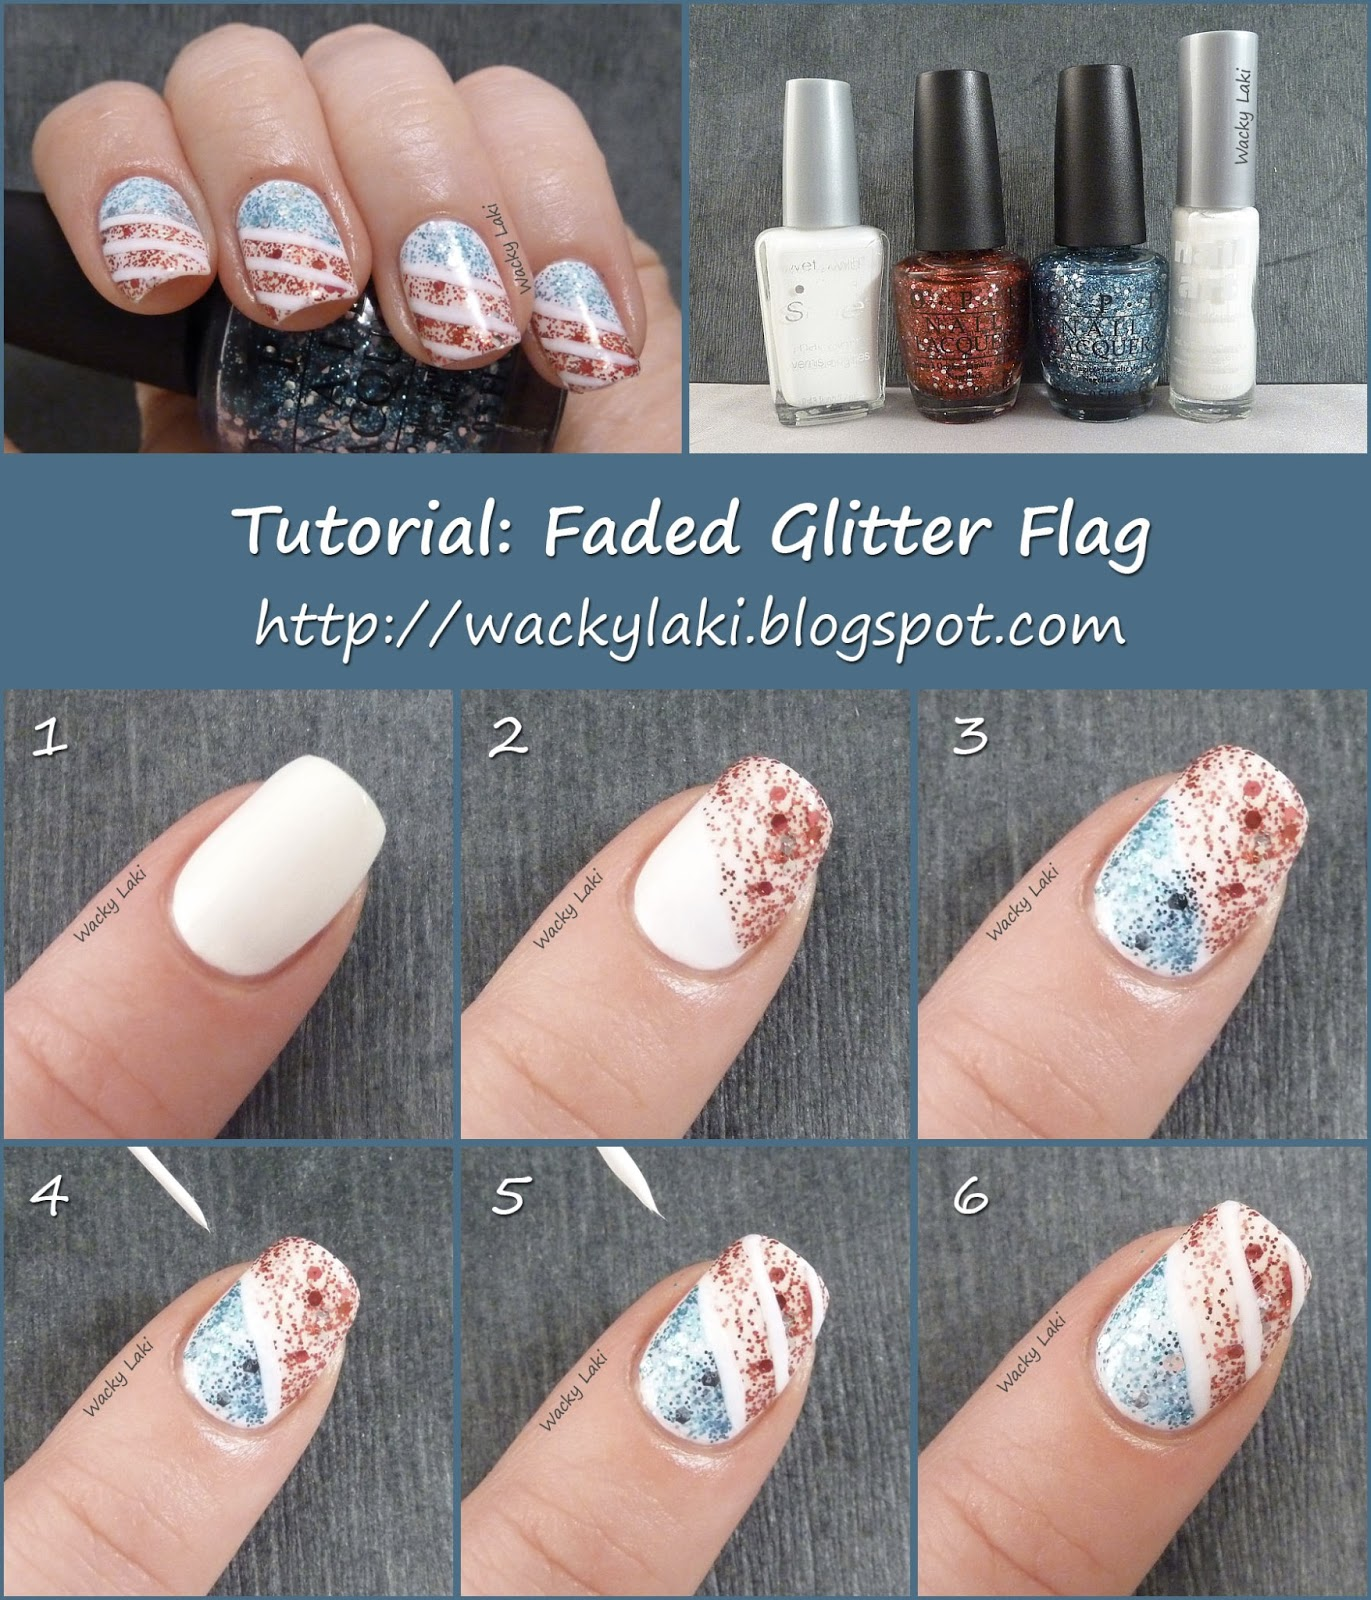 Glitter Fade Nail Polish Tutorial Hession Hairdressing